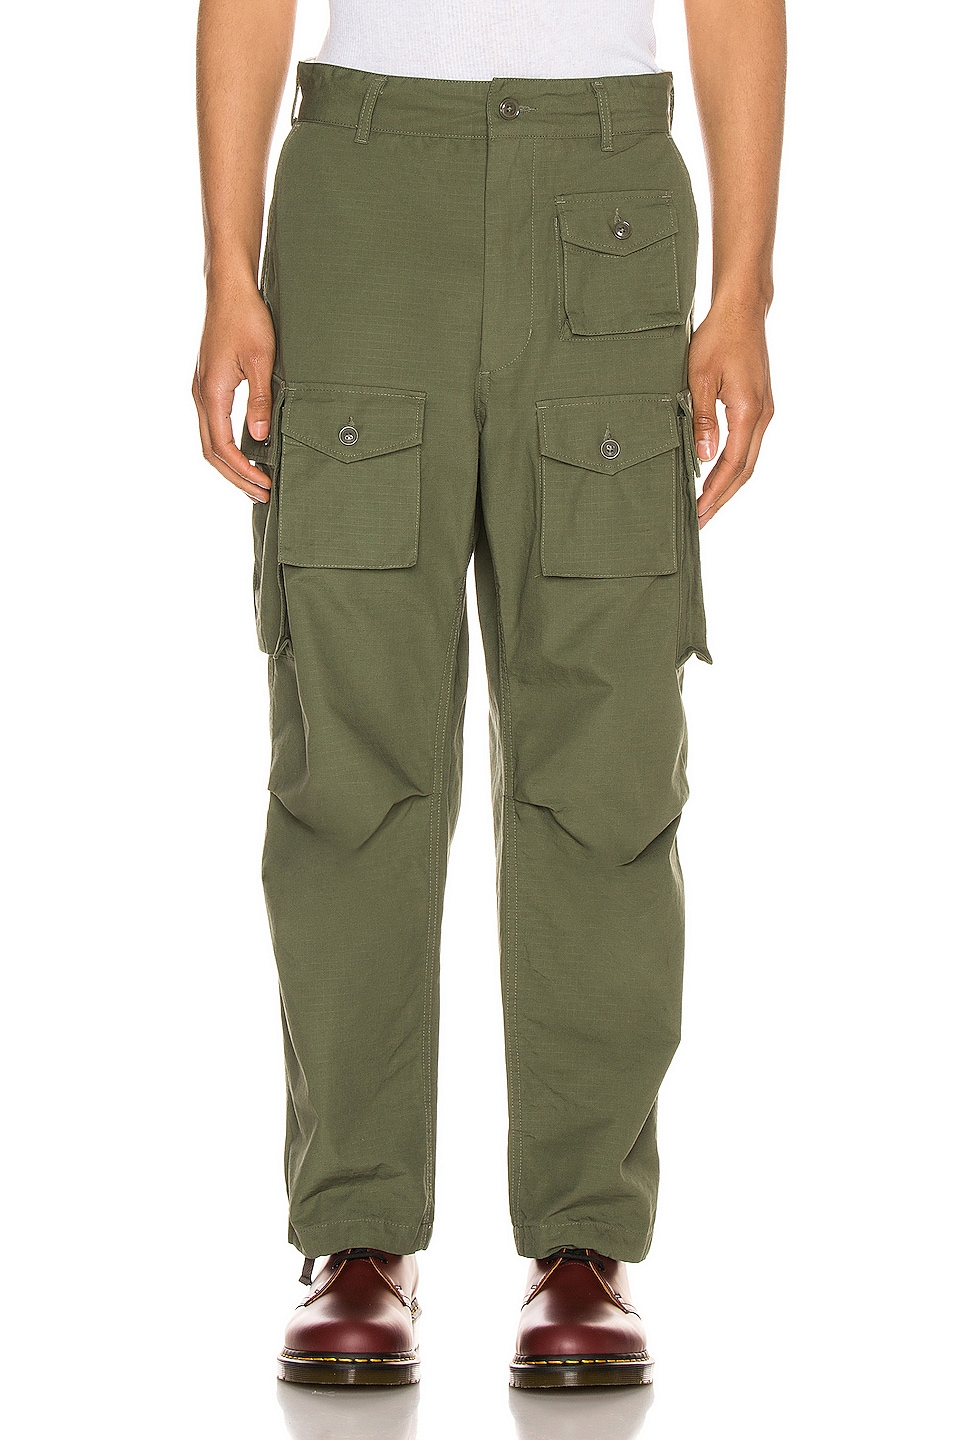 Image 1 of Engineered Garments FA Pant in Olive Cotton Ripstop